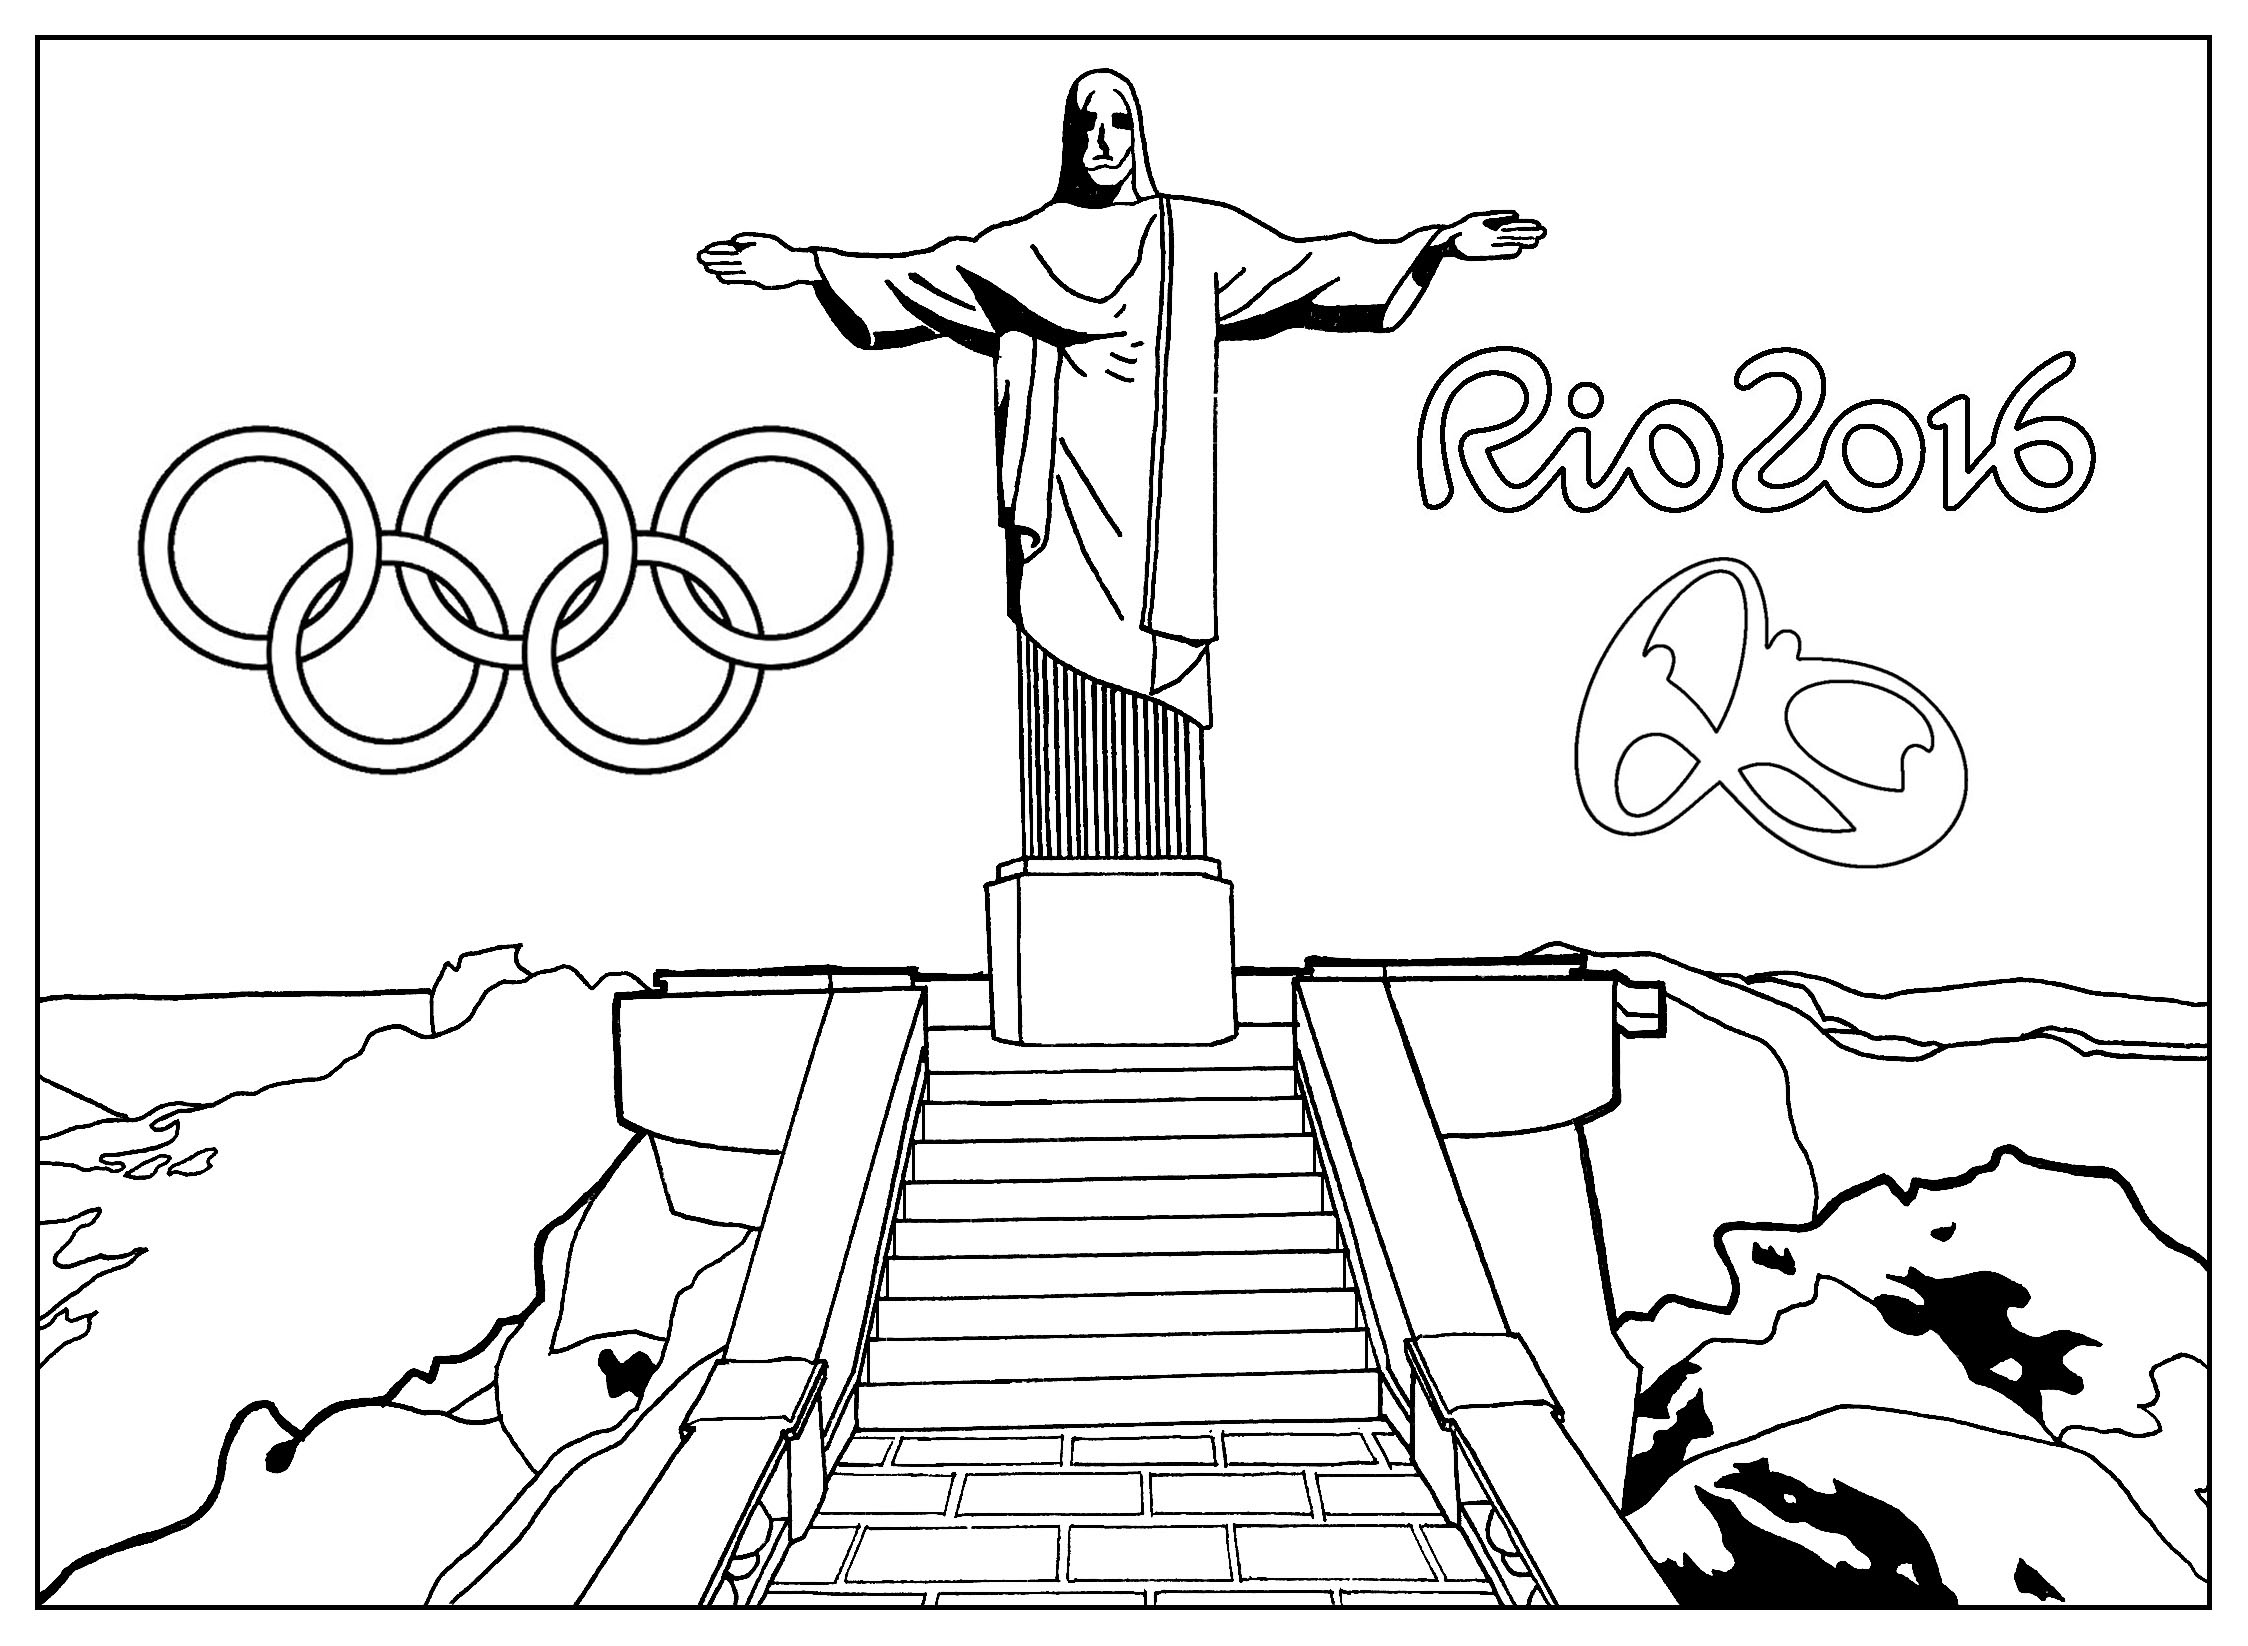 Olympic Torch Drawing At Getdrawings